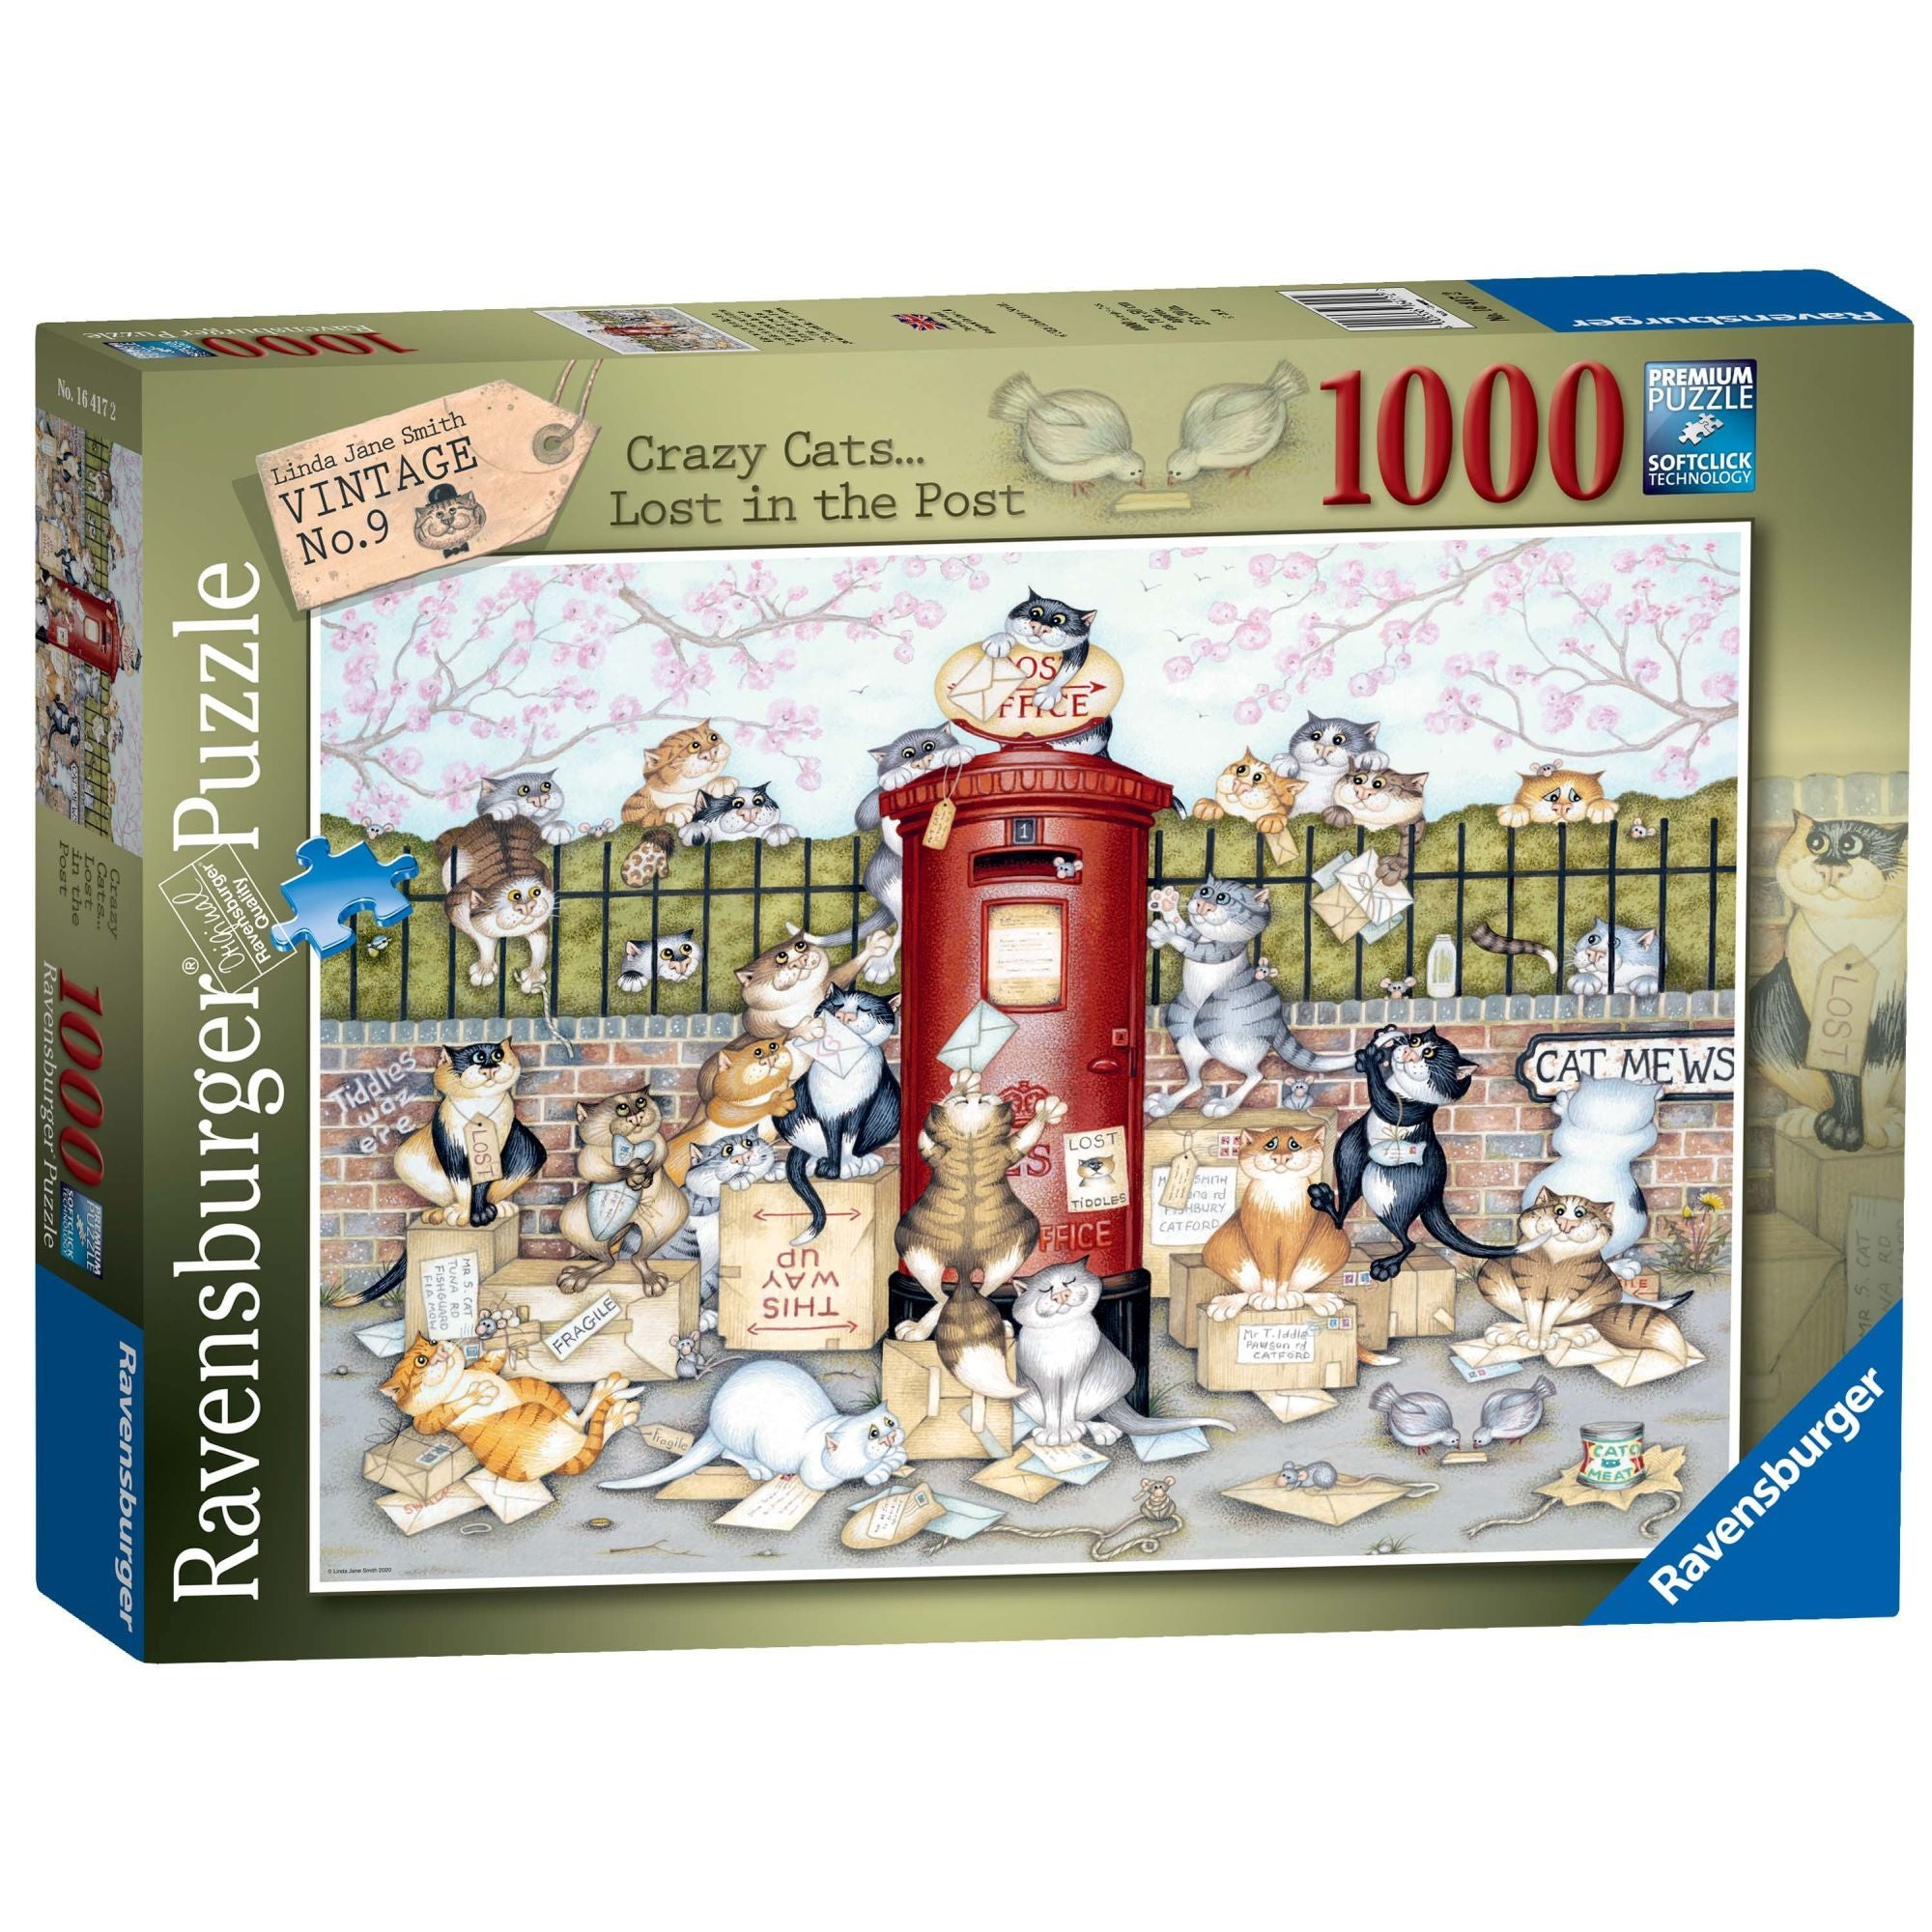 Crazy Cats Lost in the Post Jigsaw